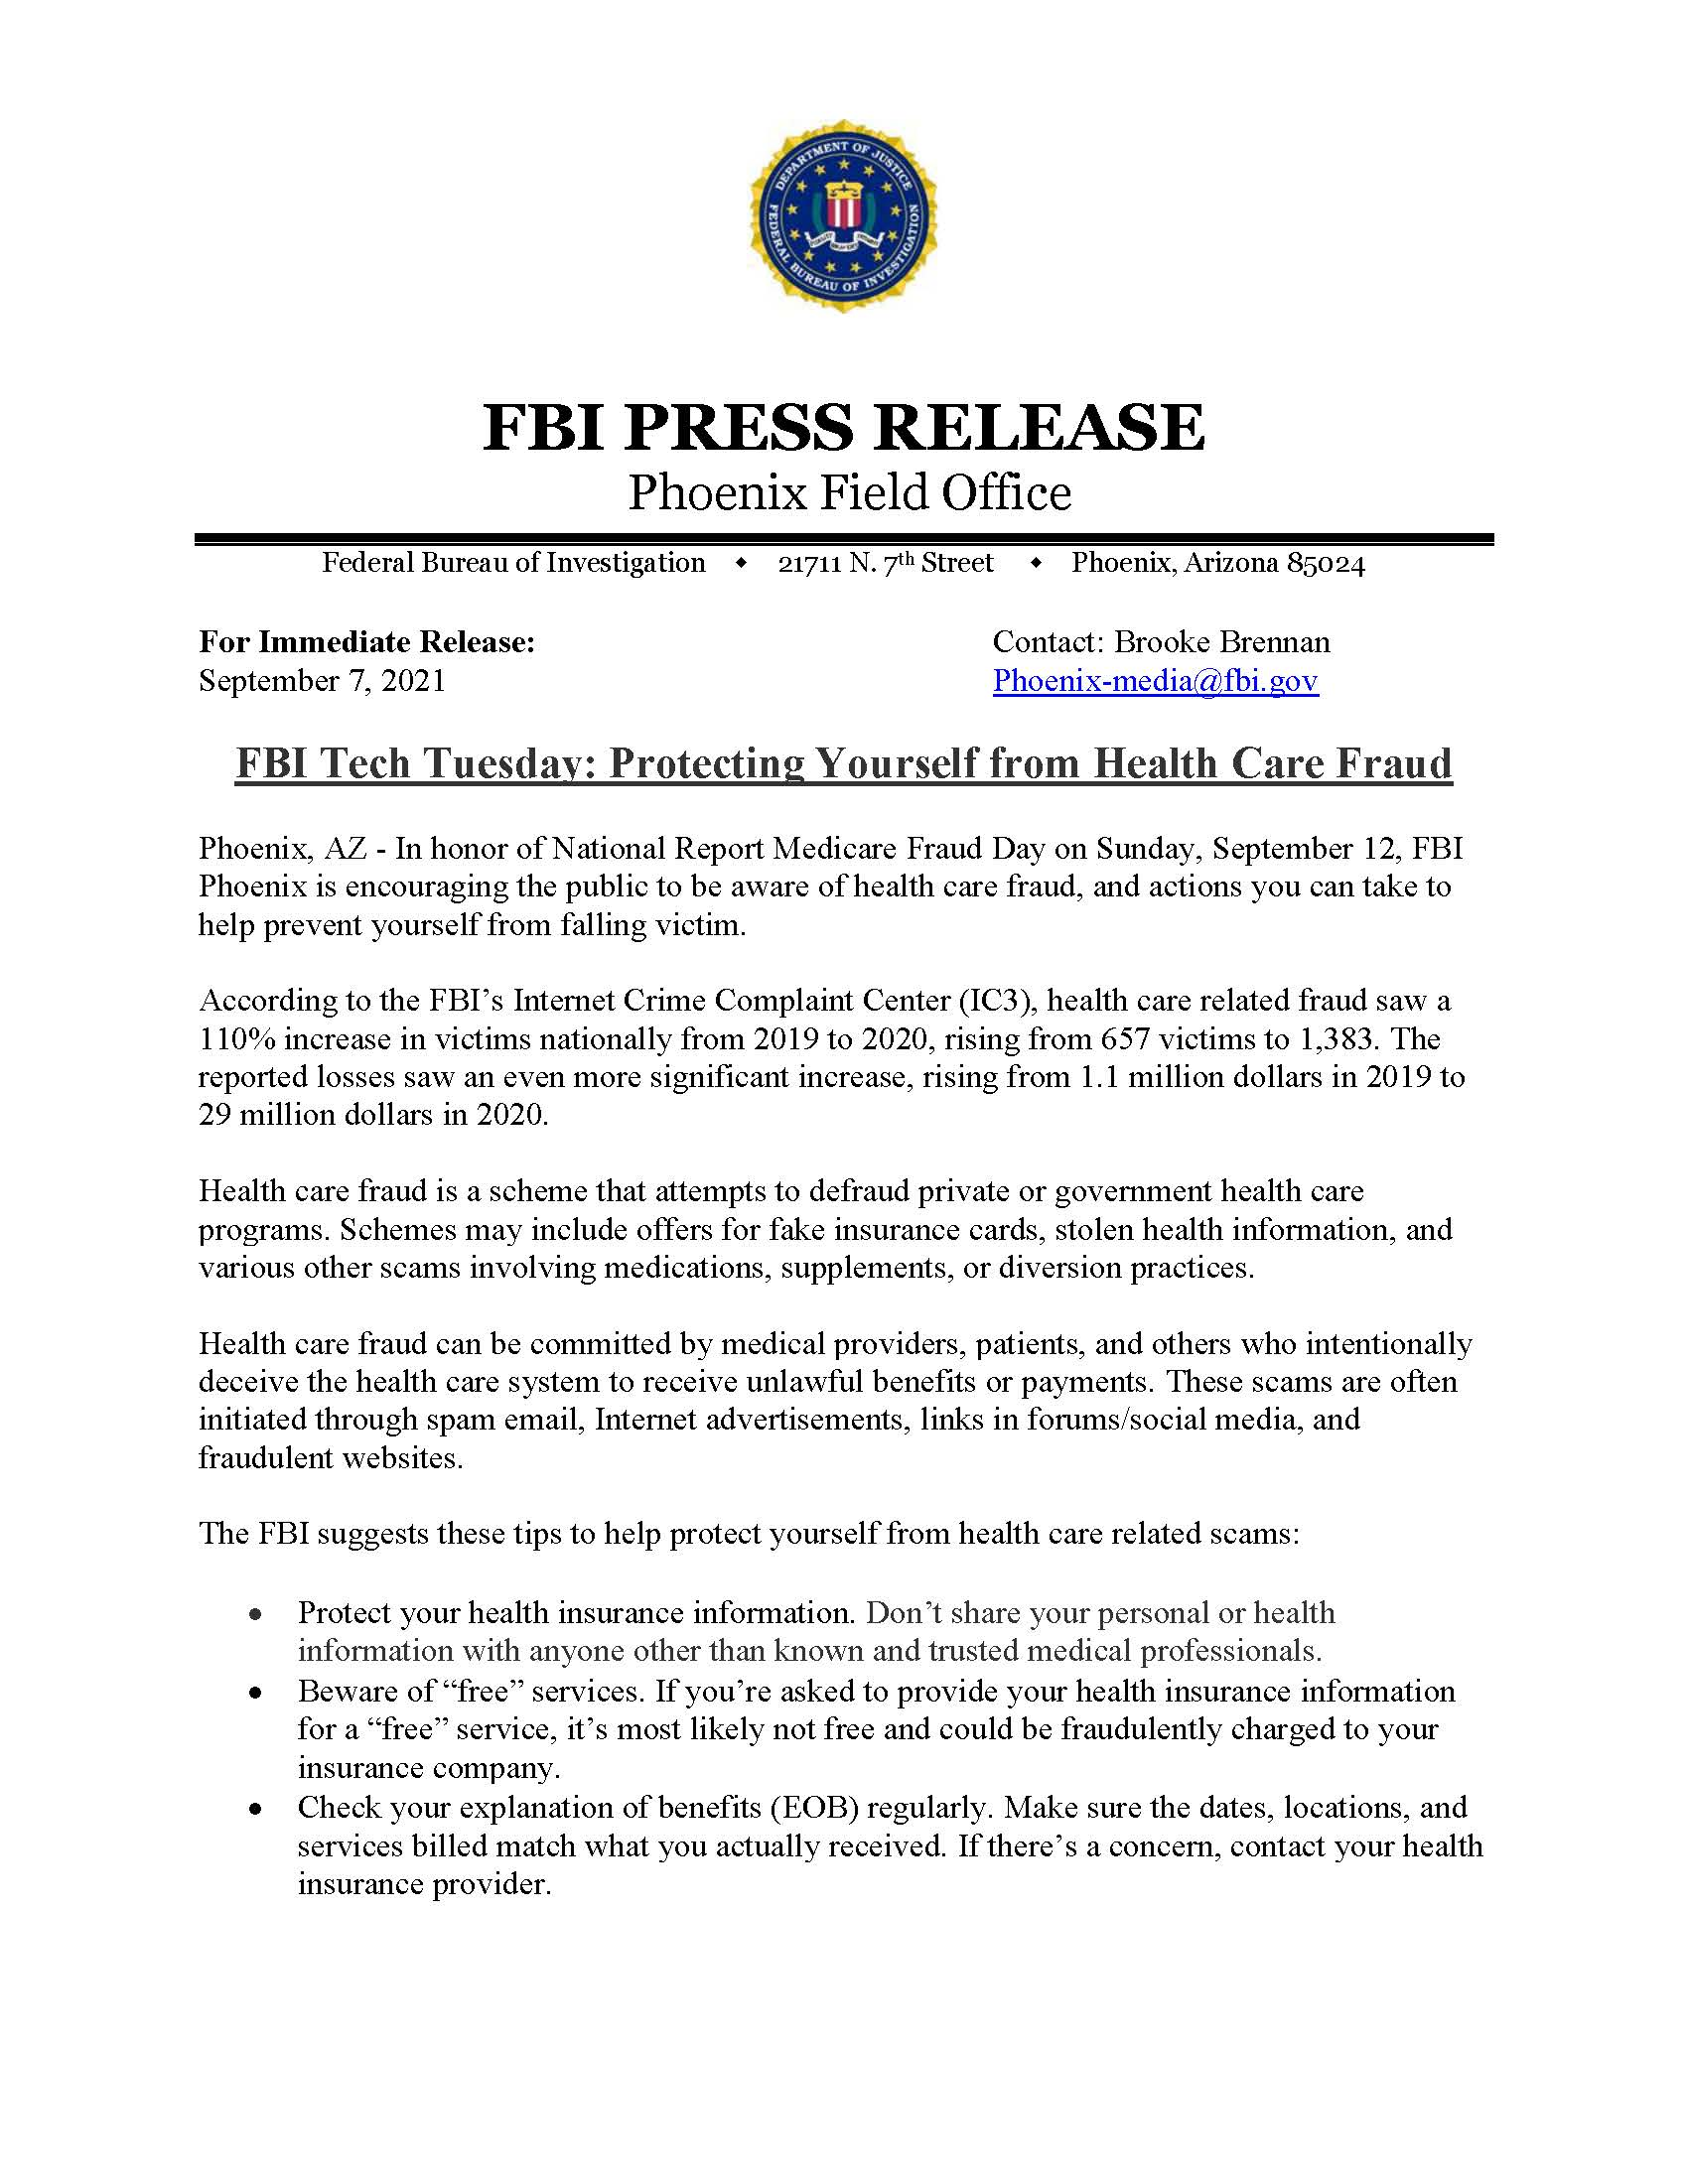 FBI Tech Tuesday: Protecting Yourself from Health Care Fraud